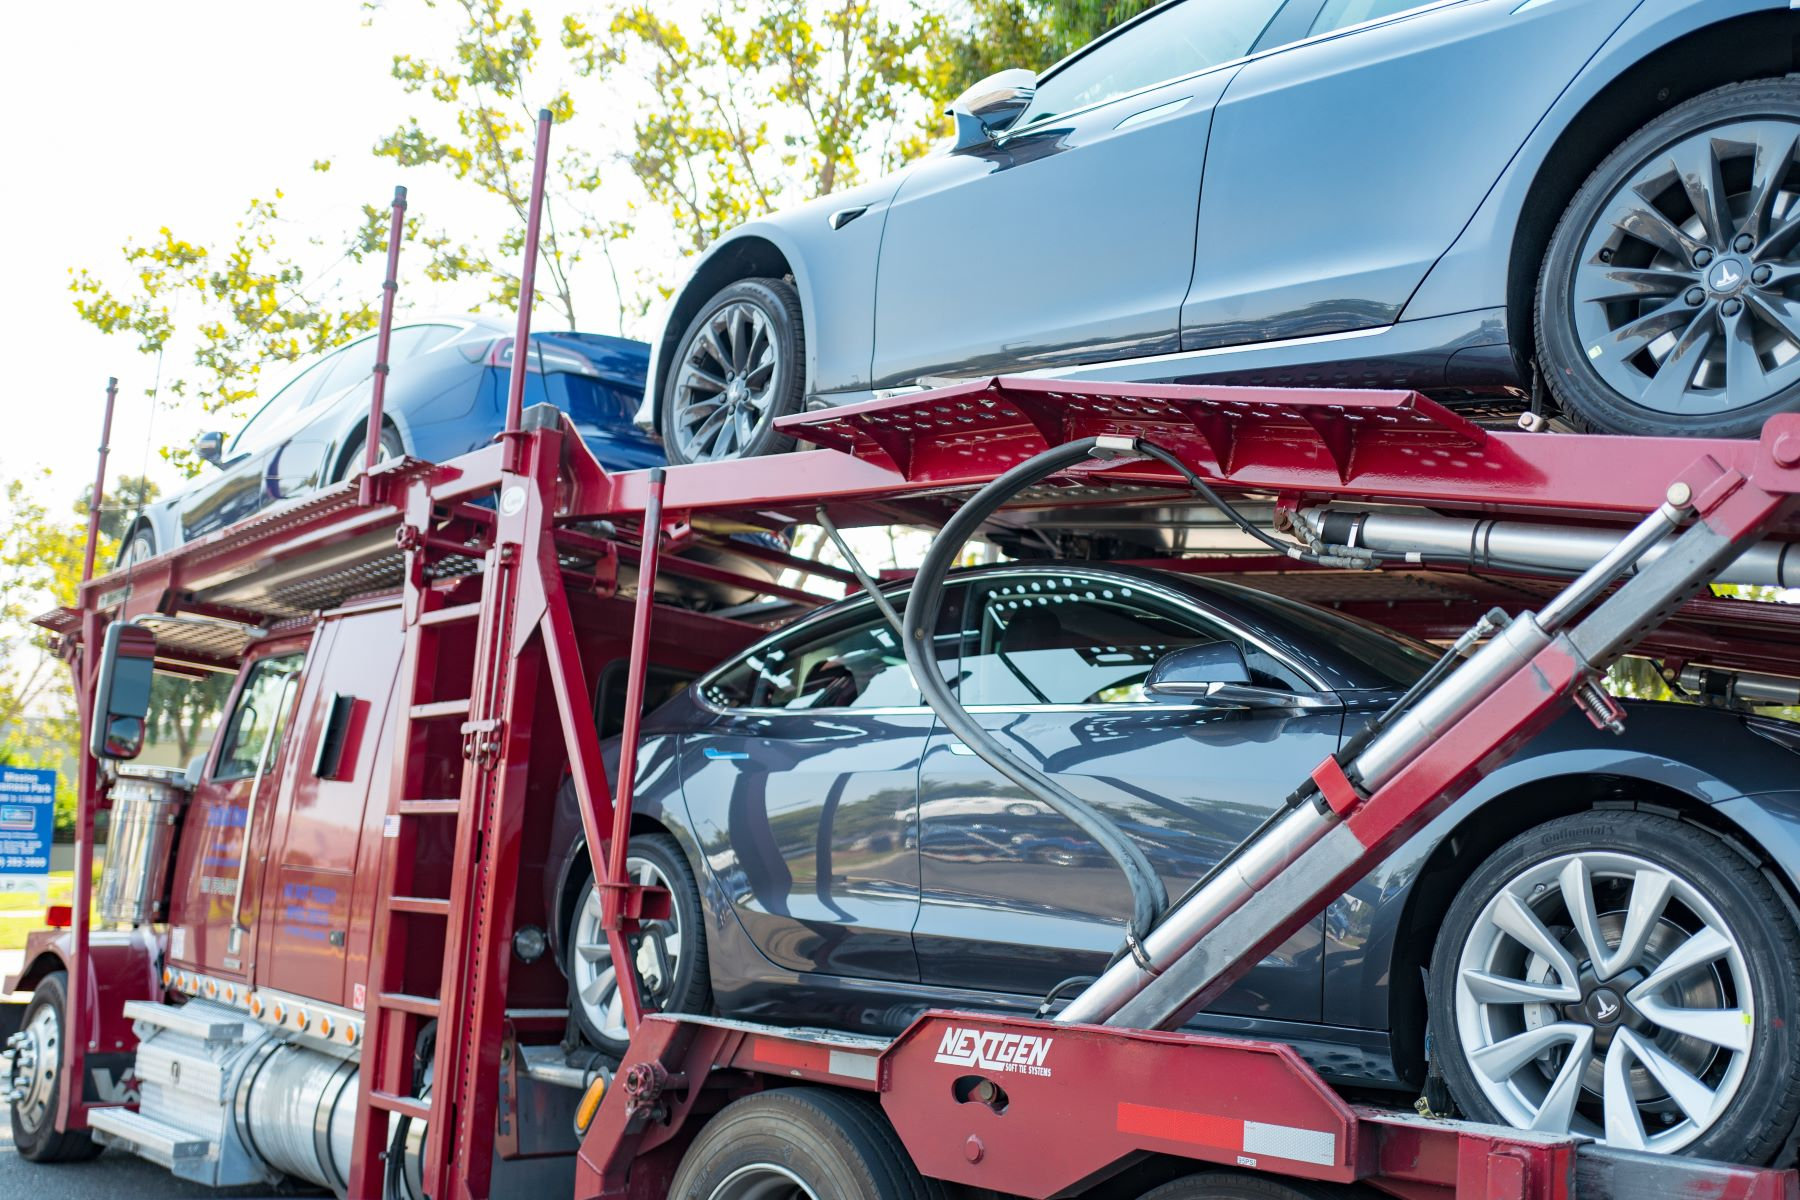 A Tesla delivery truck filled with Tesla Model 3 vehicles